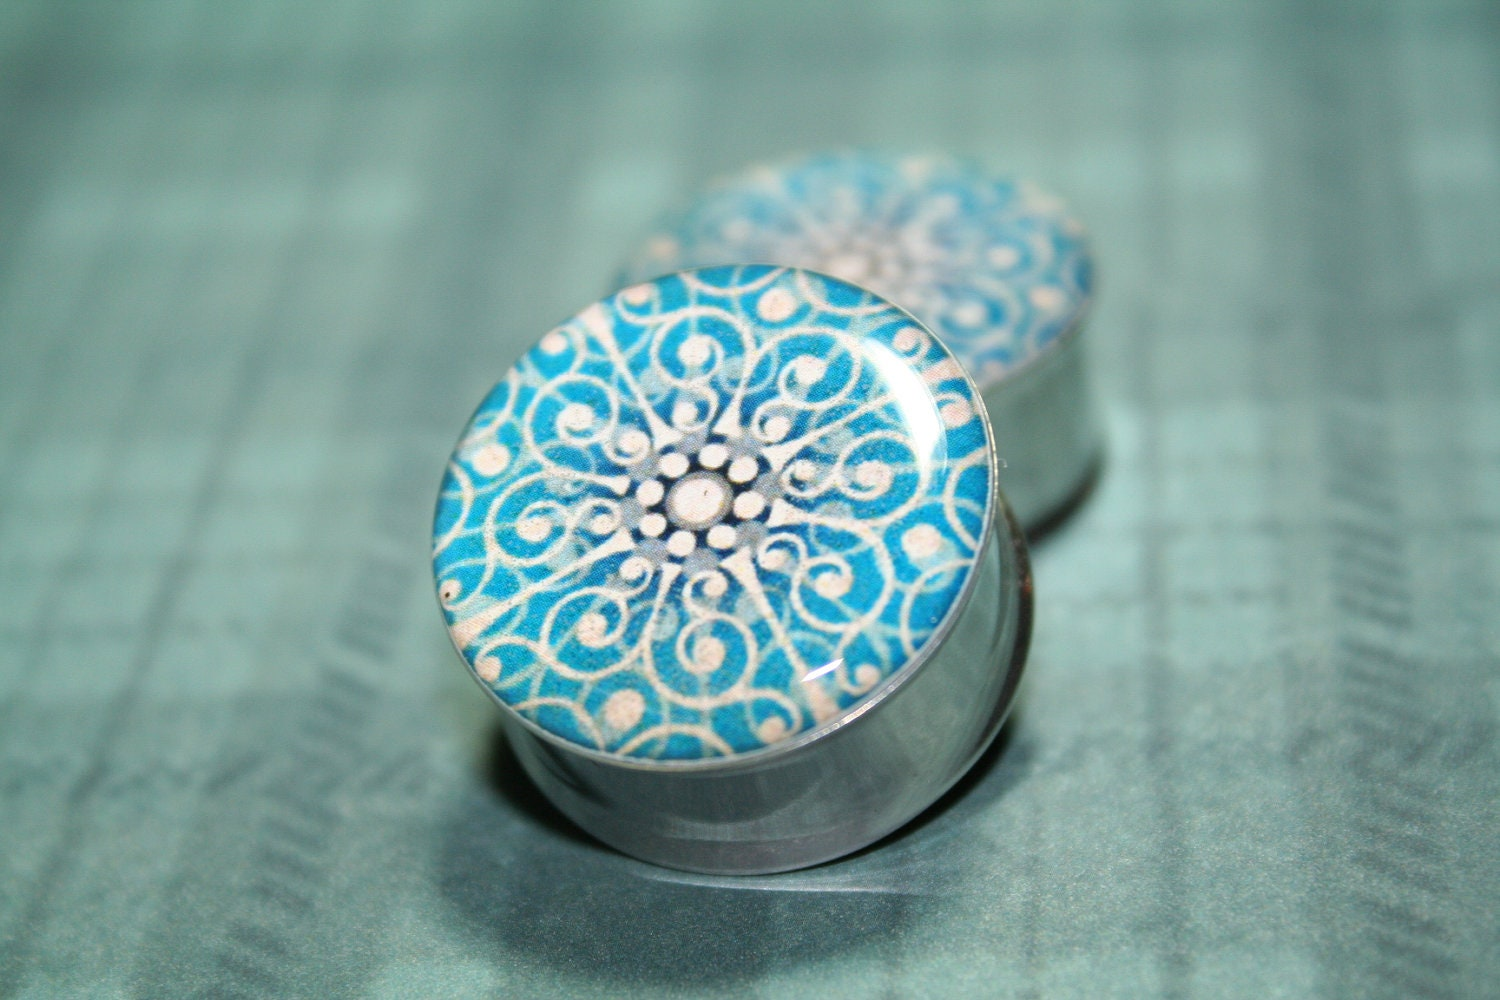 "Kaleidoscope Plugs, Style 1, 0g, 00g, 7/16, 1/2, 9/16, 5/8, 3/4, 7/8, 1 inch (Soon in sizes 1 1/8 ""-2"")"